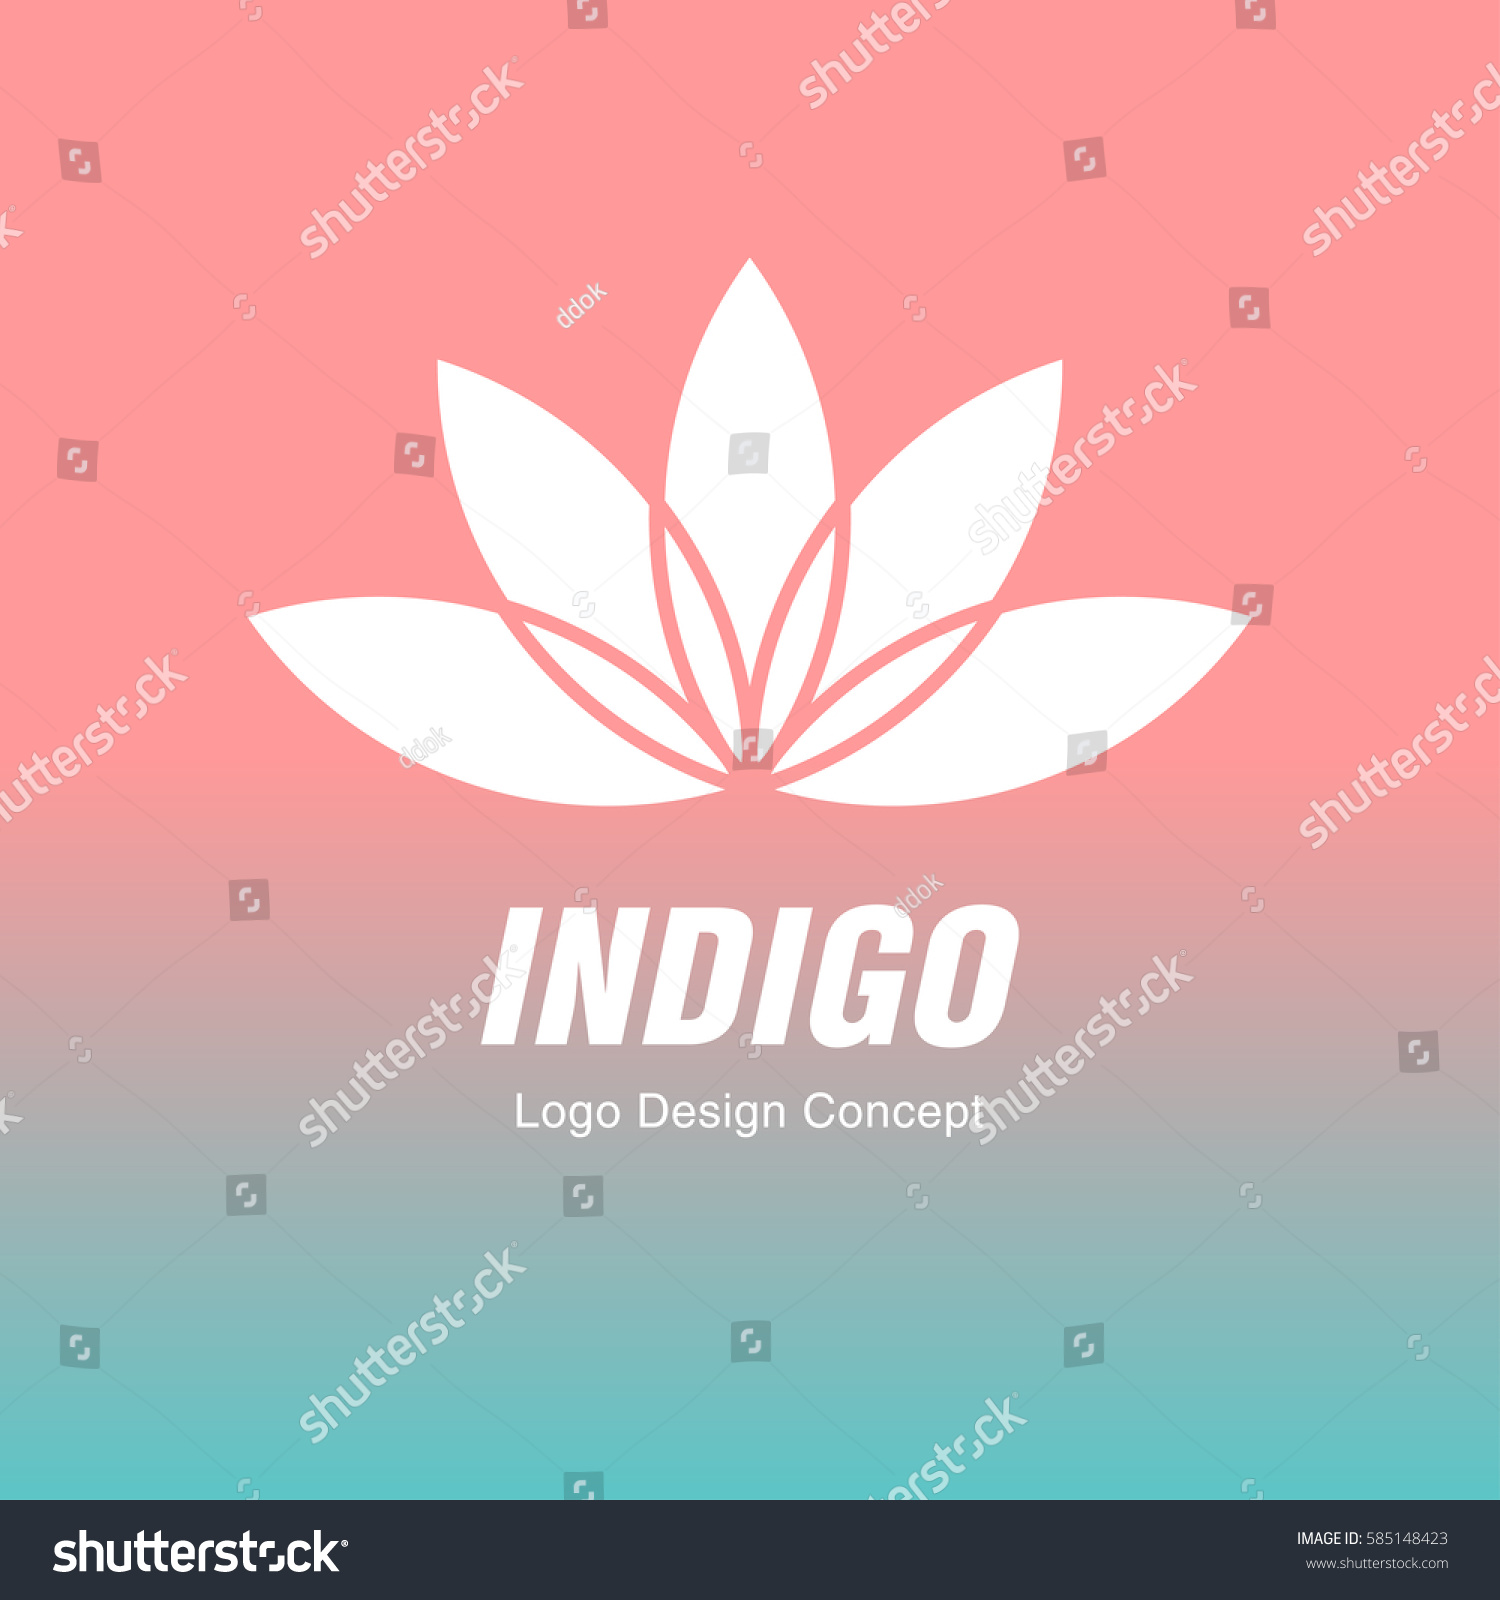 Abstract flower design silhouette creative symbol universal icon abstract flower design silhouette creative symbol universal icon lotus yoga spa sign simple logotype template for premium business gradient background izmirmasajfo